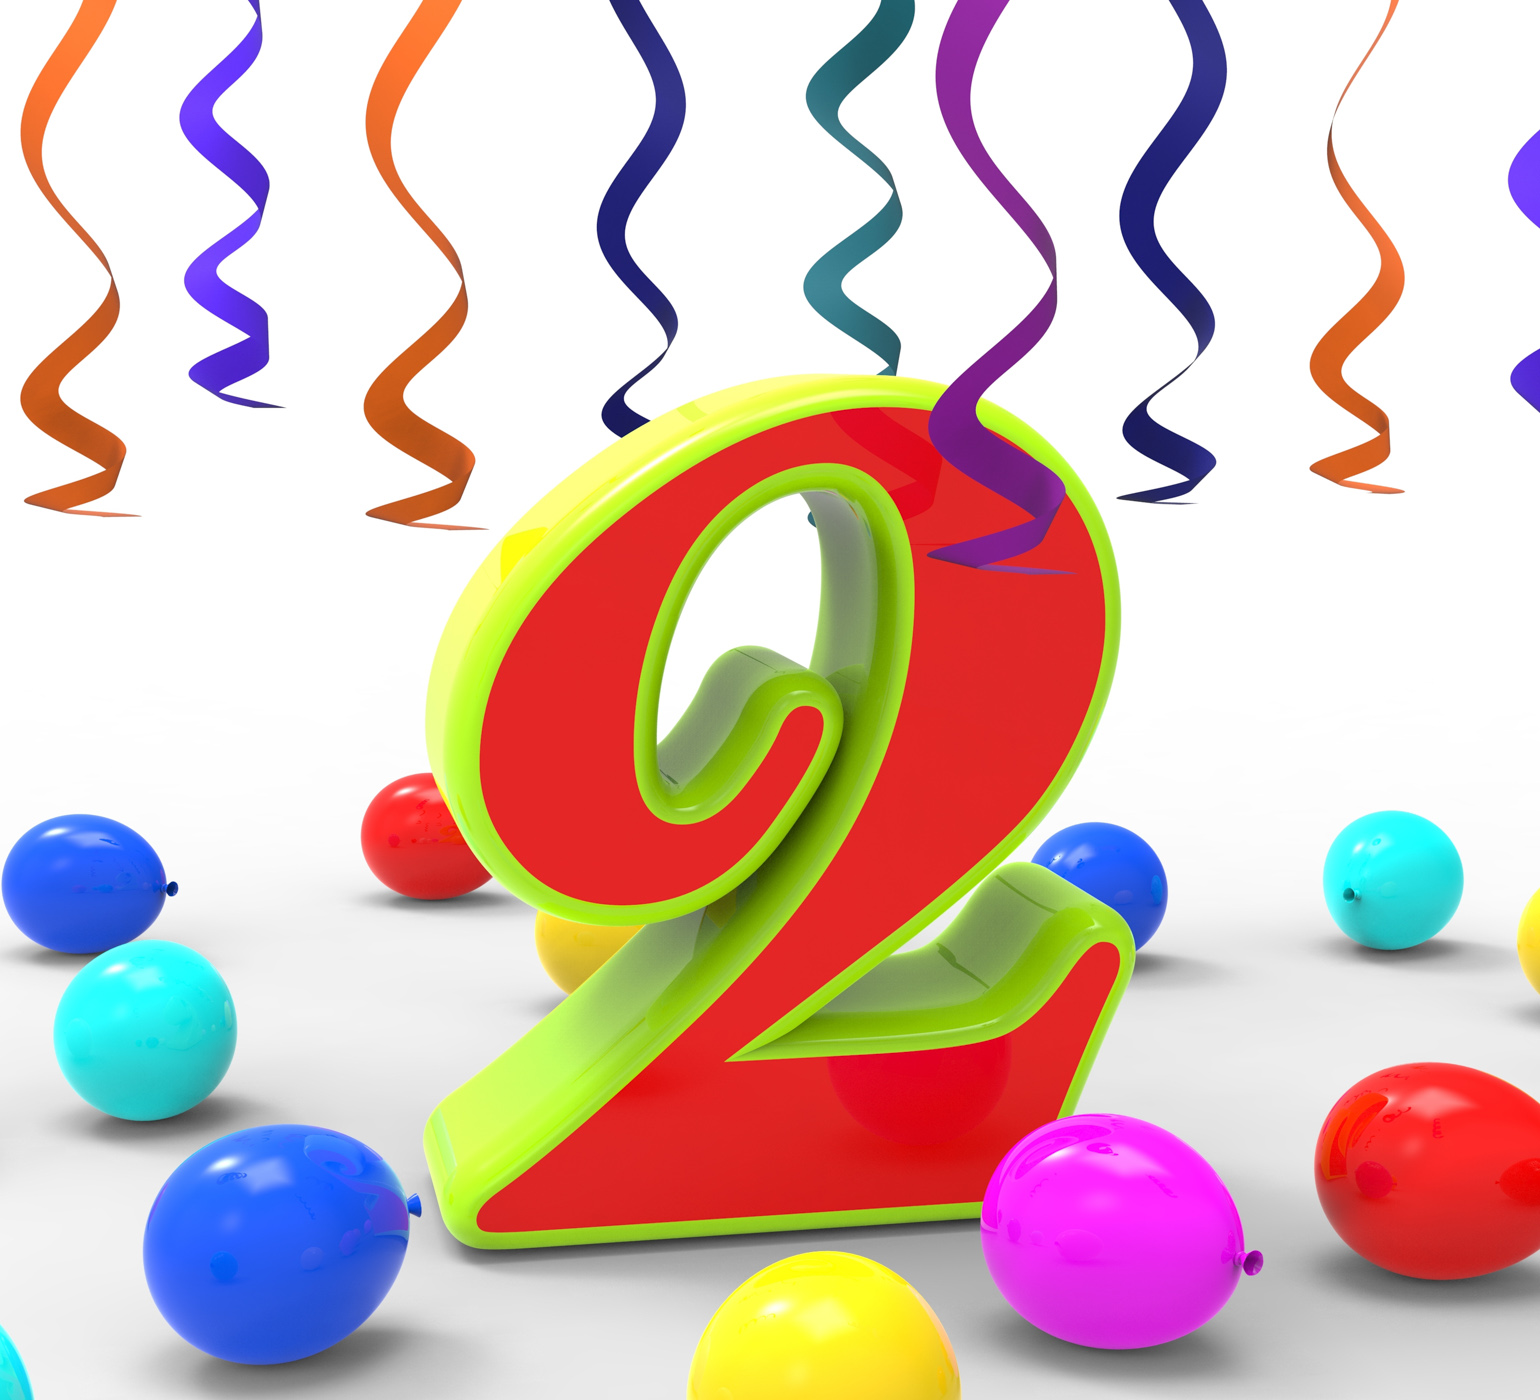 Number Two Party Shows Birthday Celebration Or Party, 2, 2nd, 3d, Balloons, HQ Photo